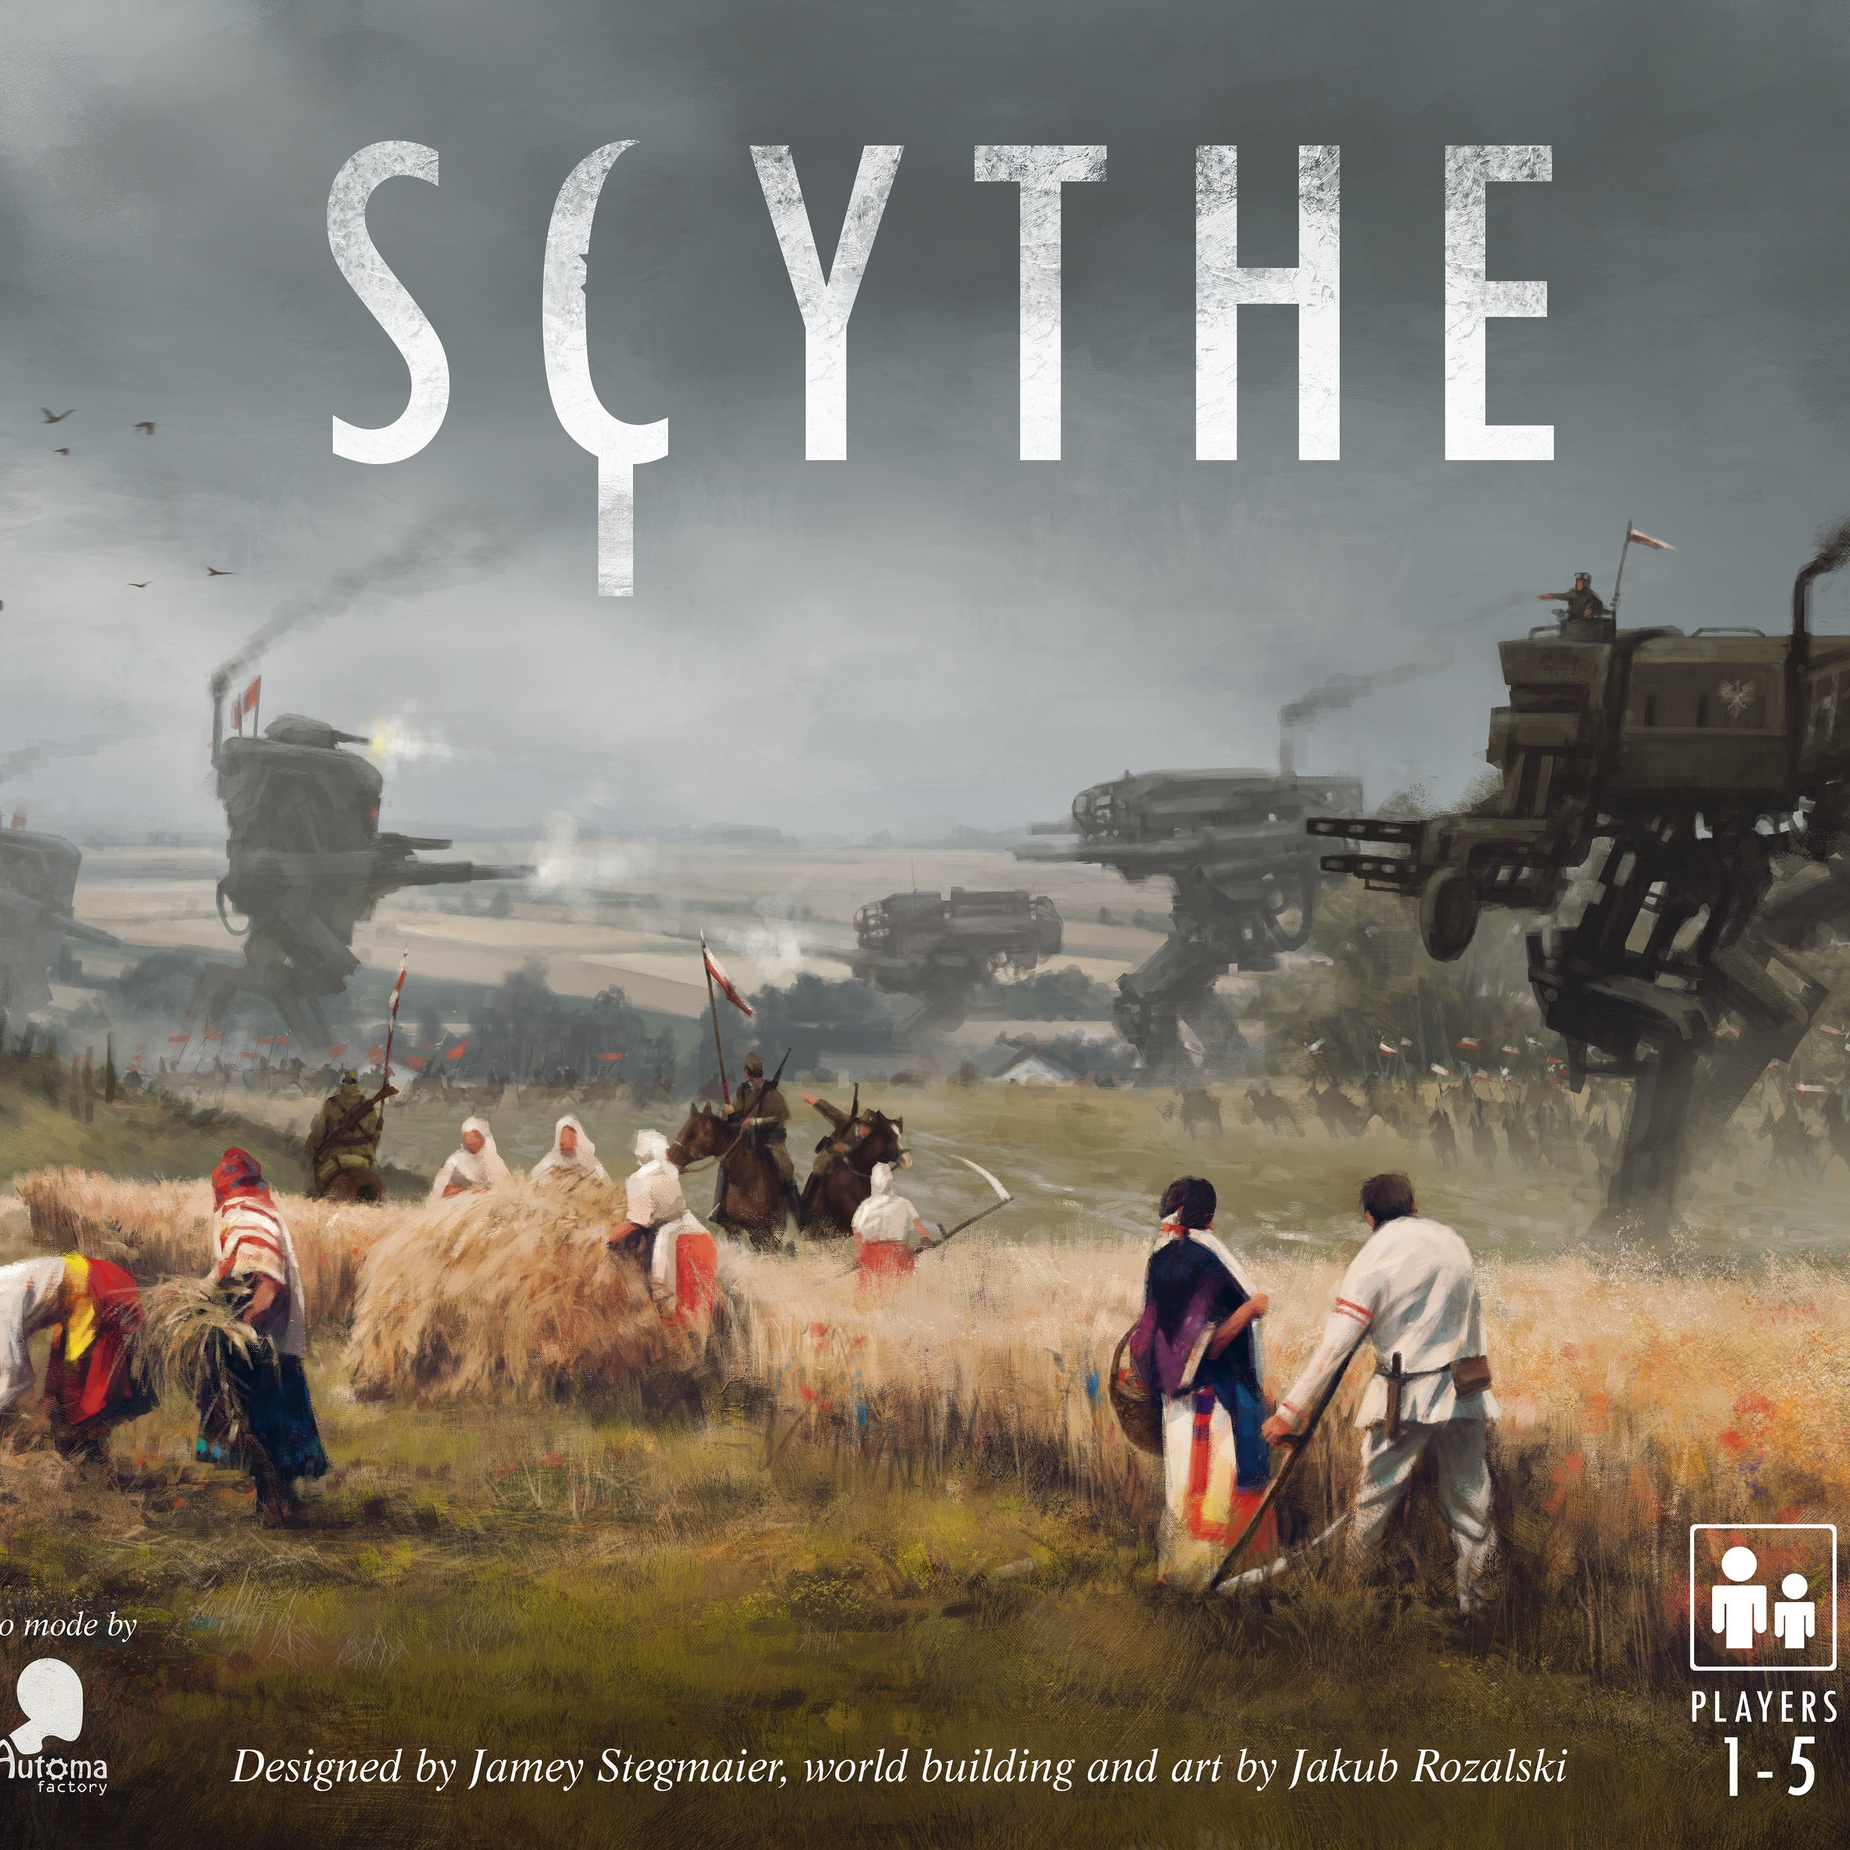 Scythe - Written ReviewVideo - Rook & RecordPodcast - Interview with Jamey Stegmaier (Designer)Podcast - Jamey Stegmaier Returns (Designer)Podcast - Interview with Morten Monrad Pederson (Automa Designer)